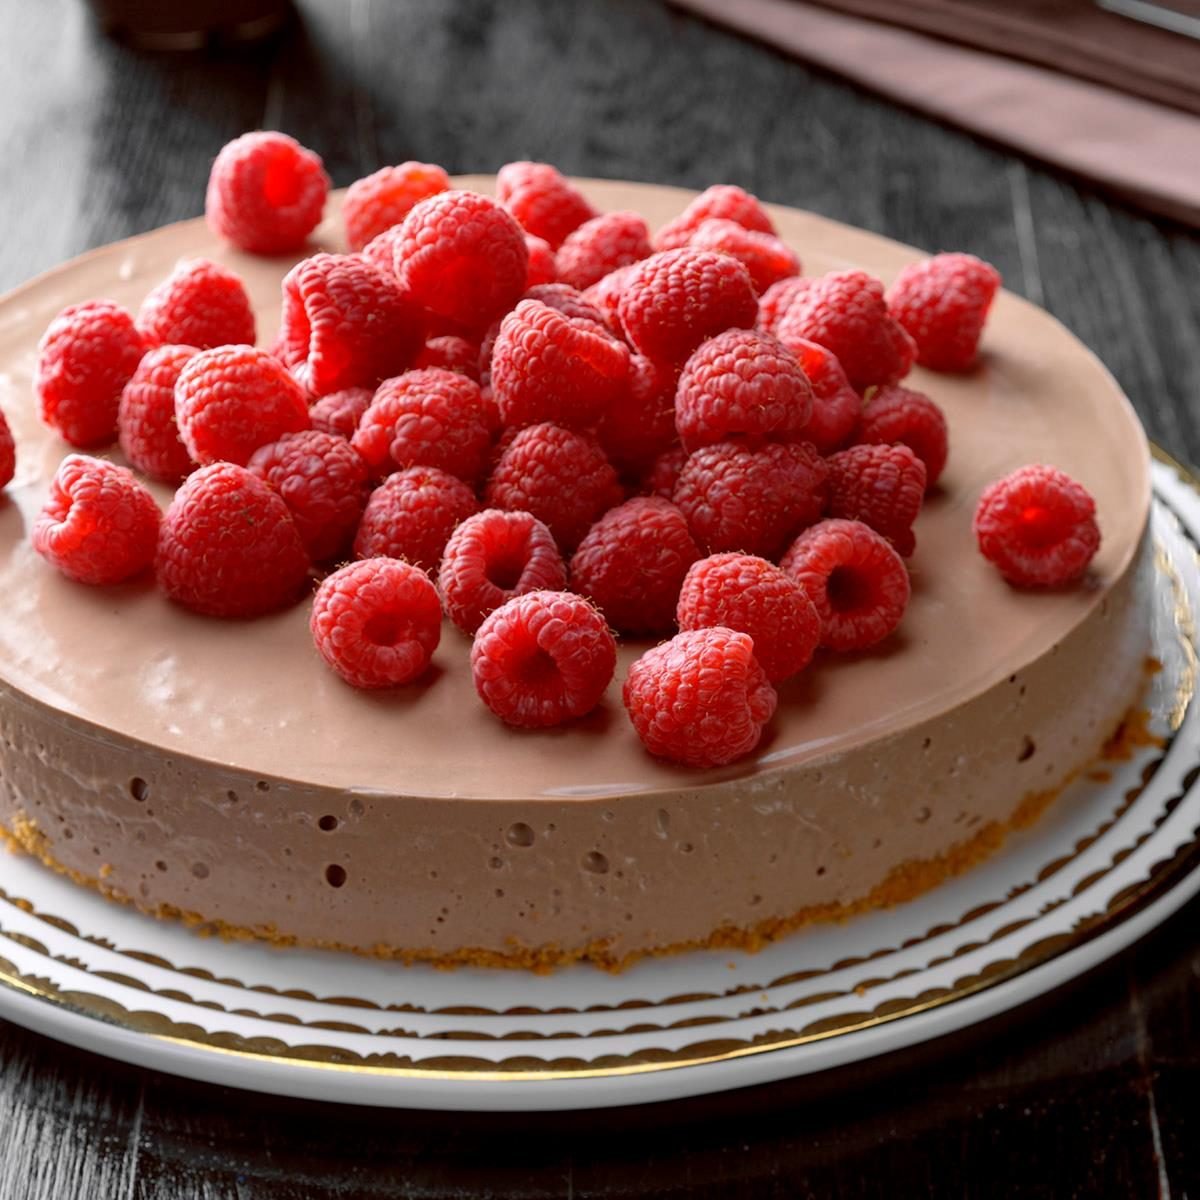 Inspired by: The Cheesecake Factory Chocolate Mousse Cheesecake